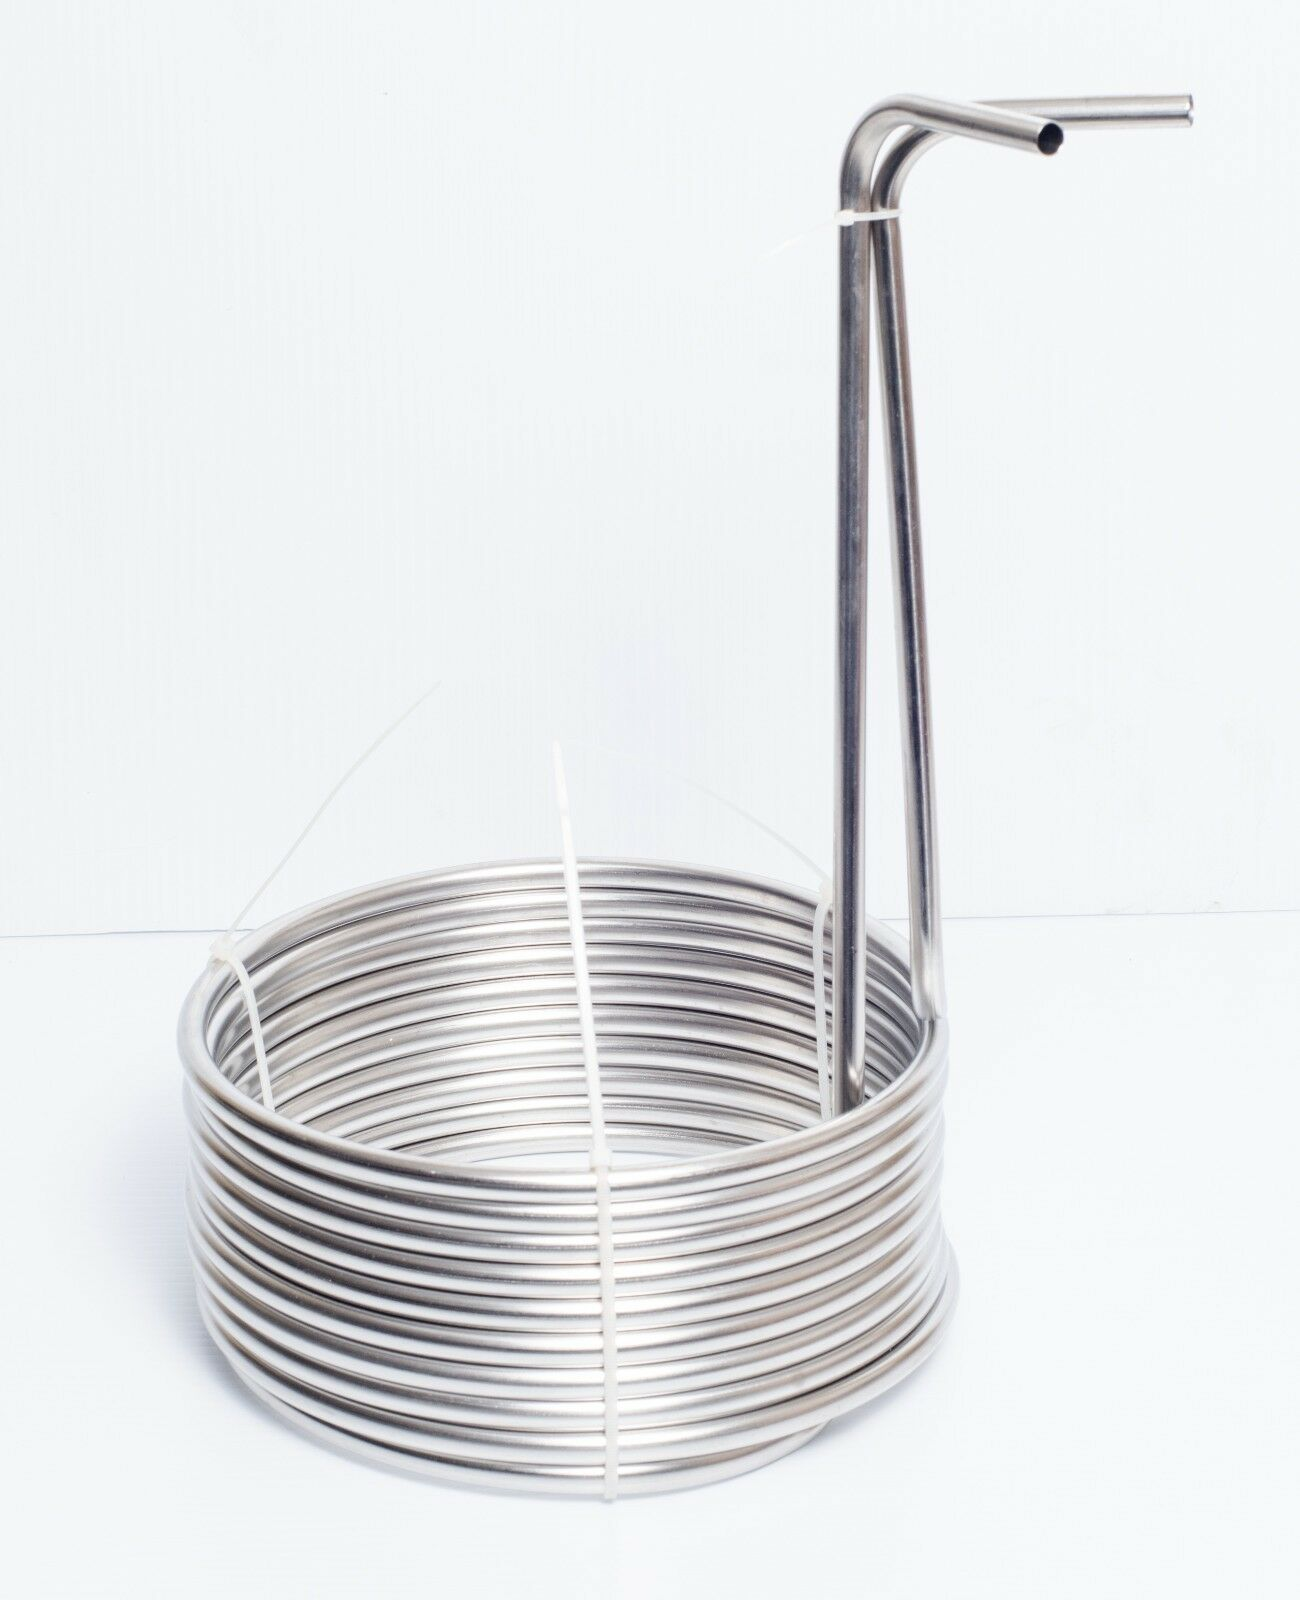 $39.99 - 25' Stainless Steel Home Brewing Beer Immersion Wort Chiller Coil 3/8